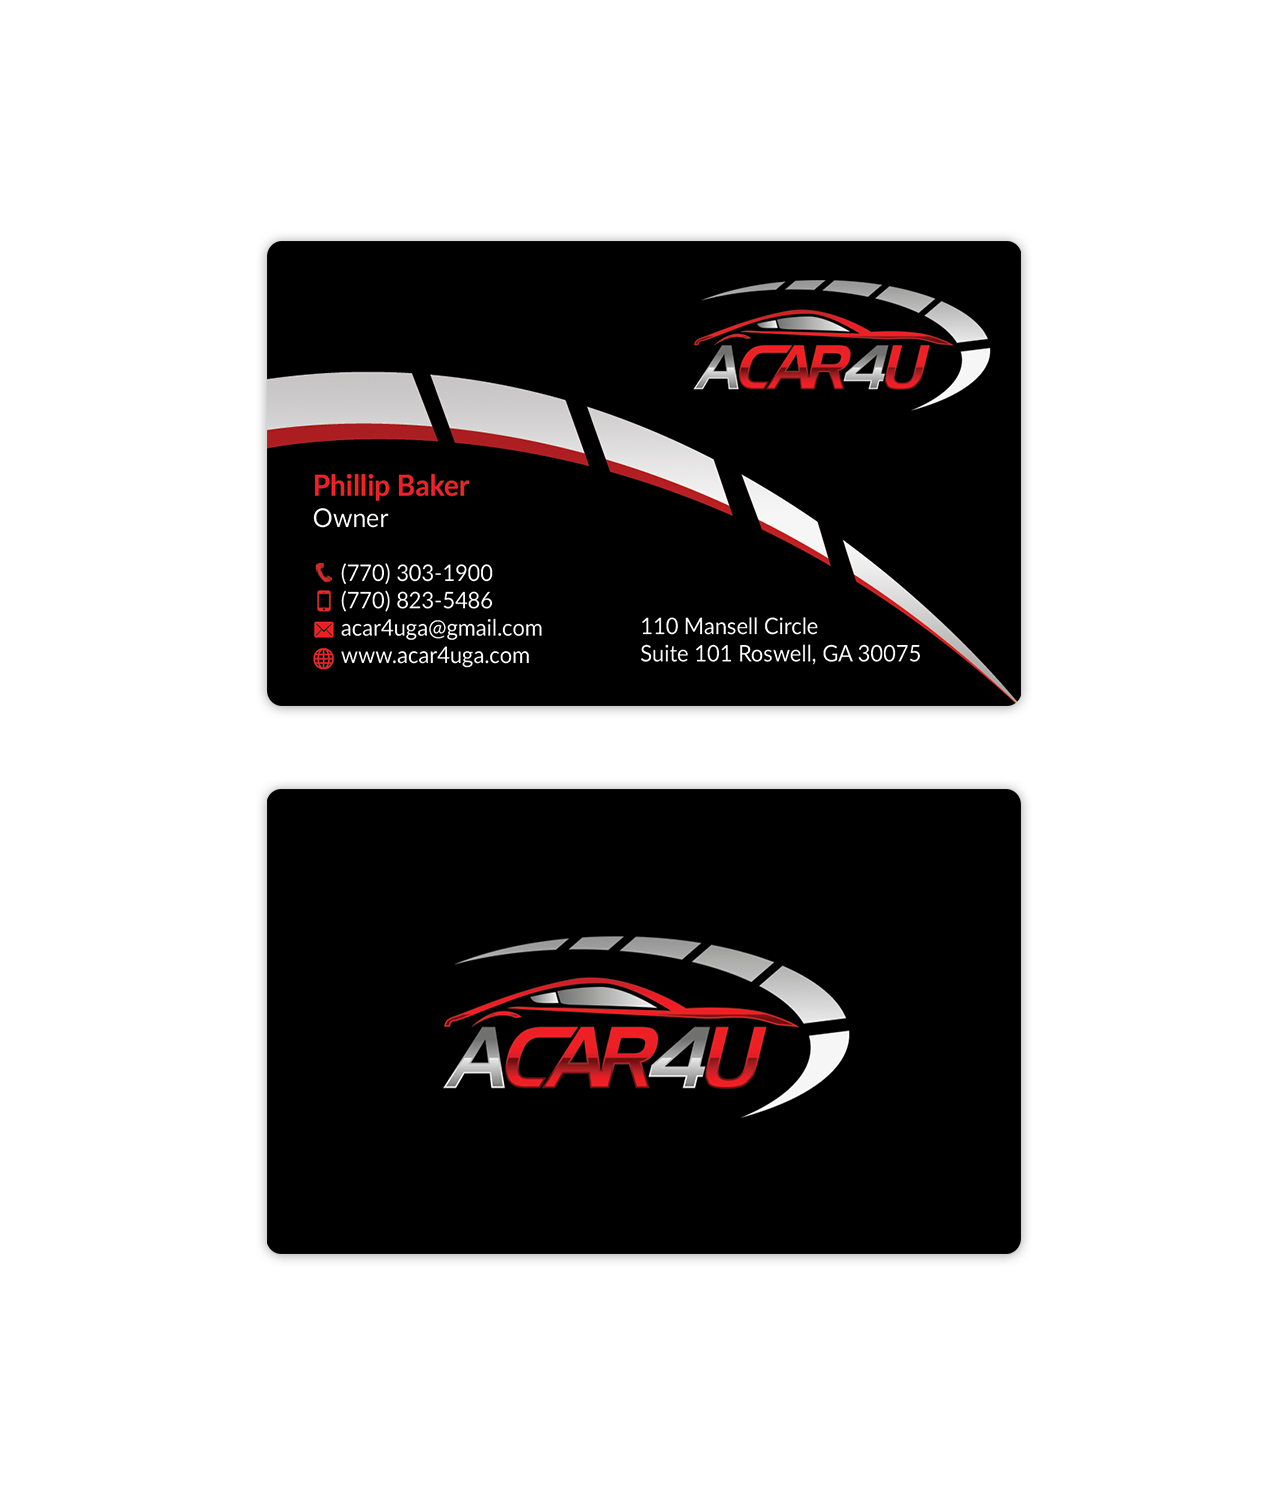 Business Card Design By Hmk For Used Car Dealer Seeks An Amazing